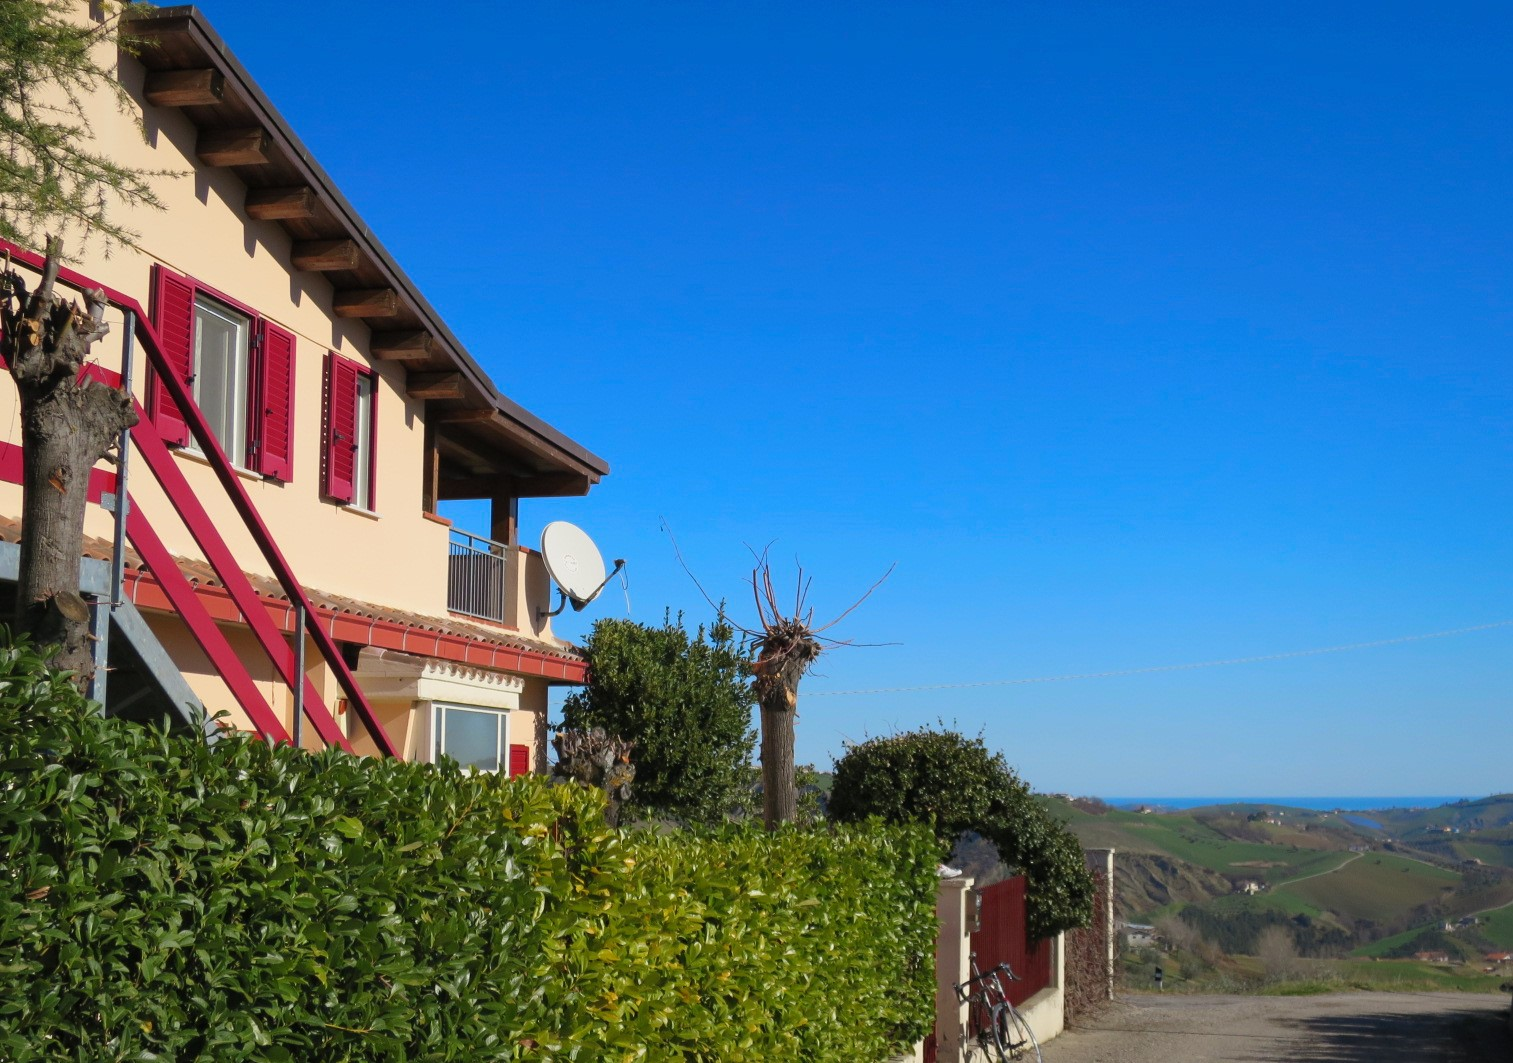 Country Houses Country Houses for sale Cellino Attanasio (TE), Casa Feudi - Cellino Attanasio - EUR 198.728 60